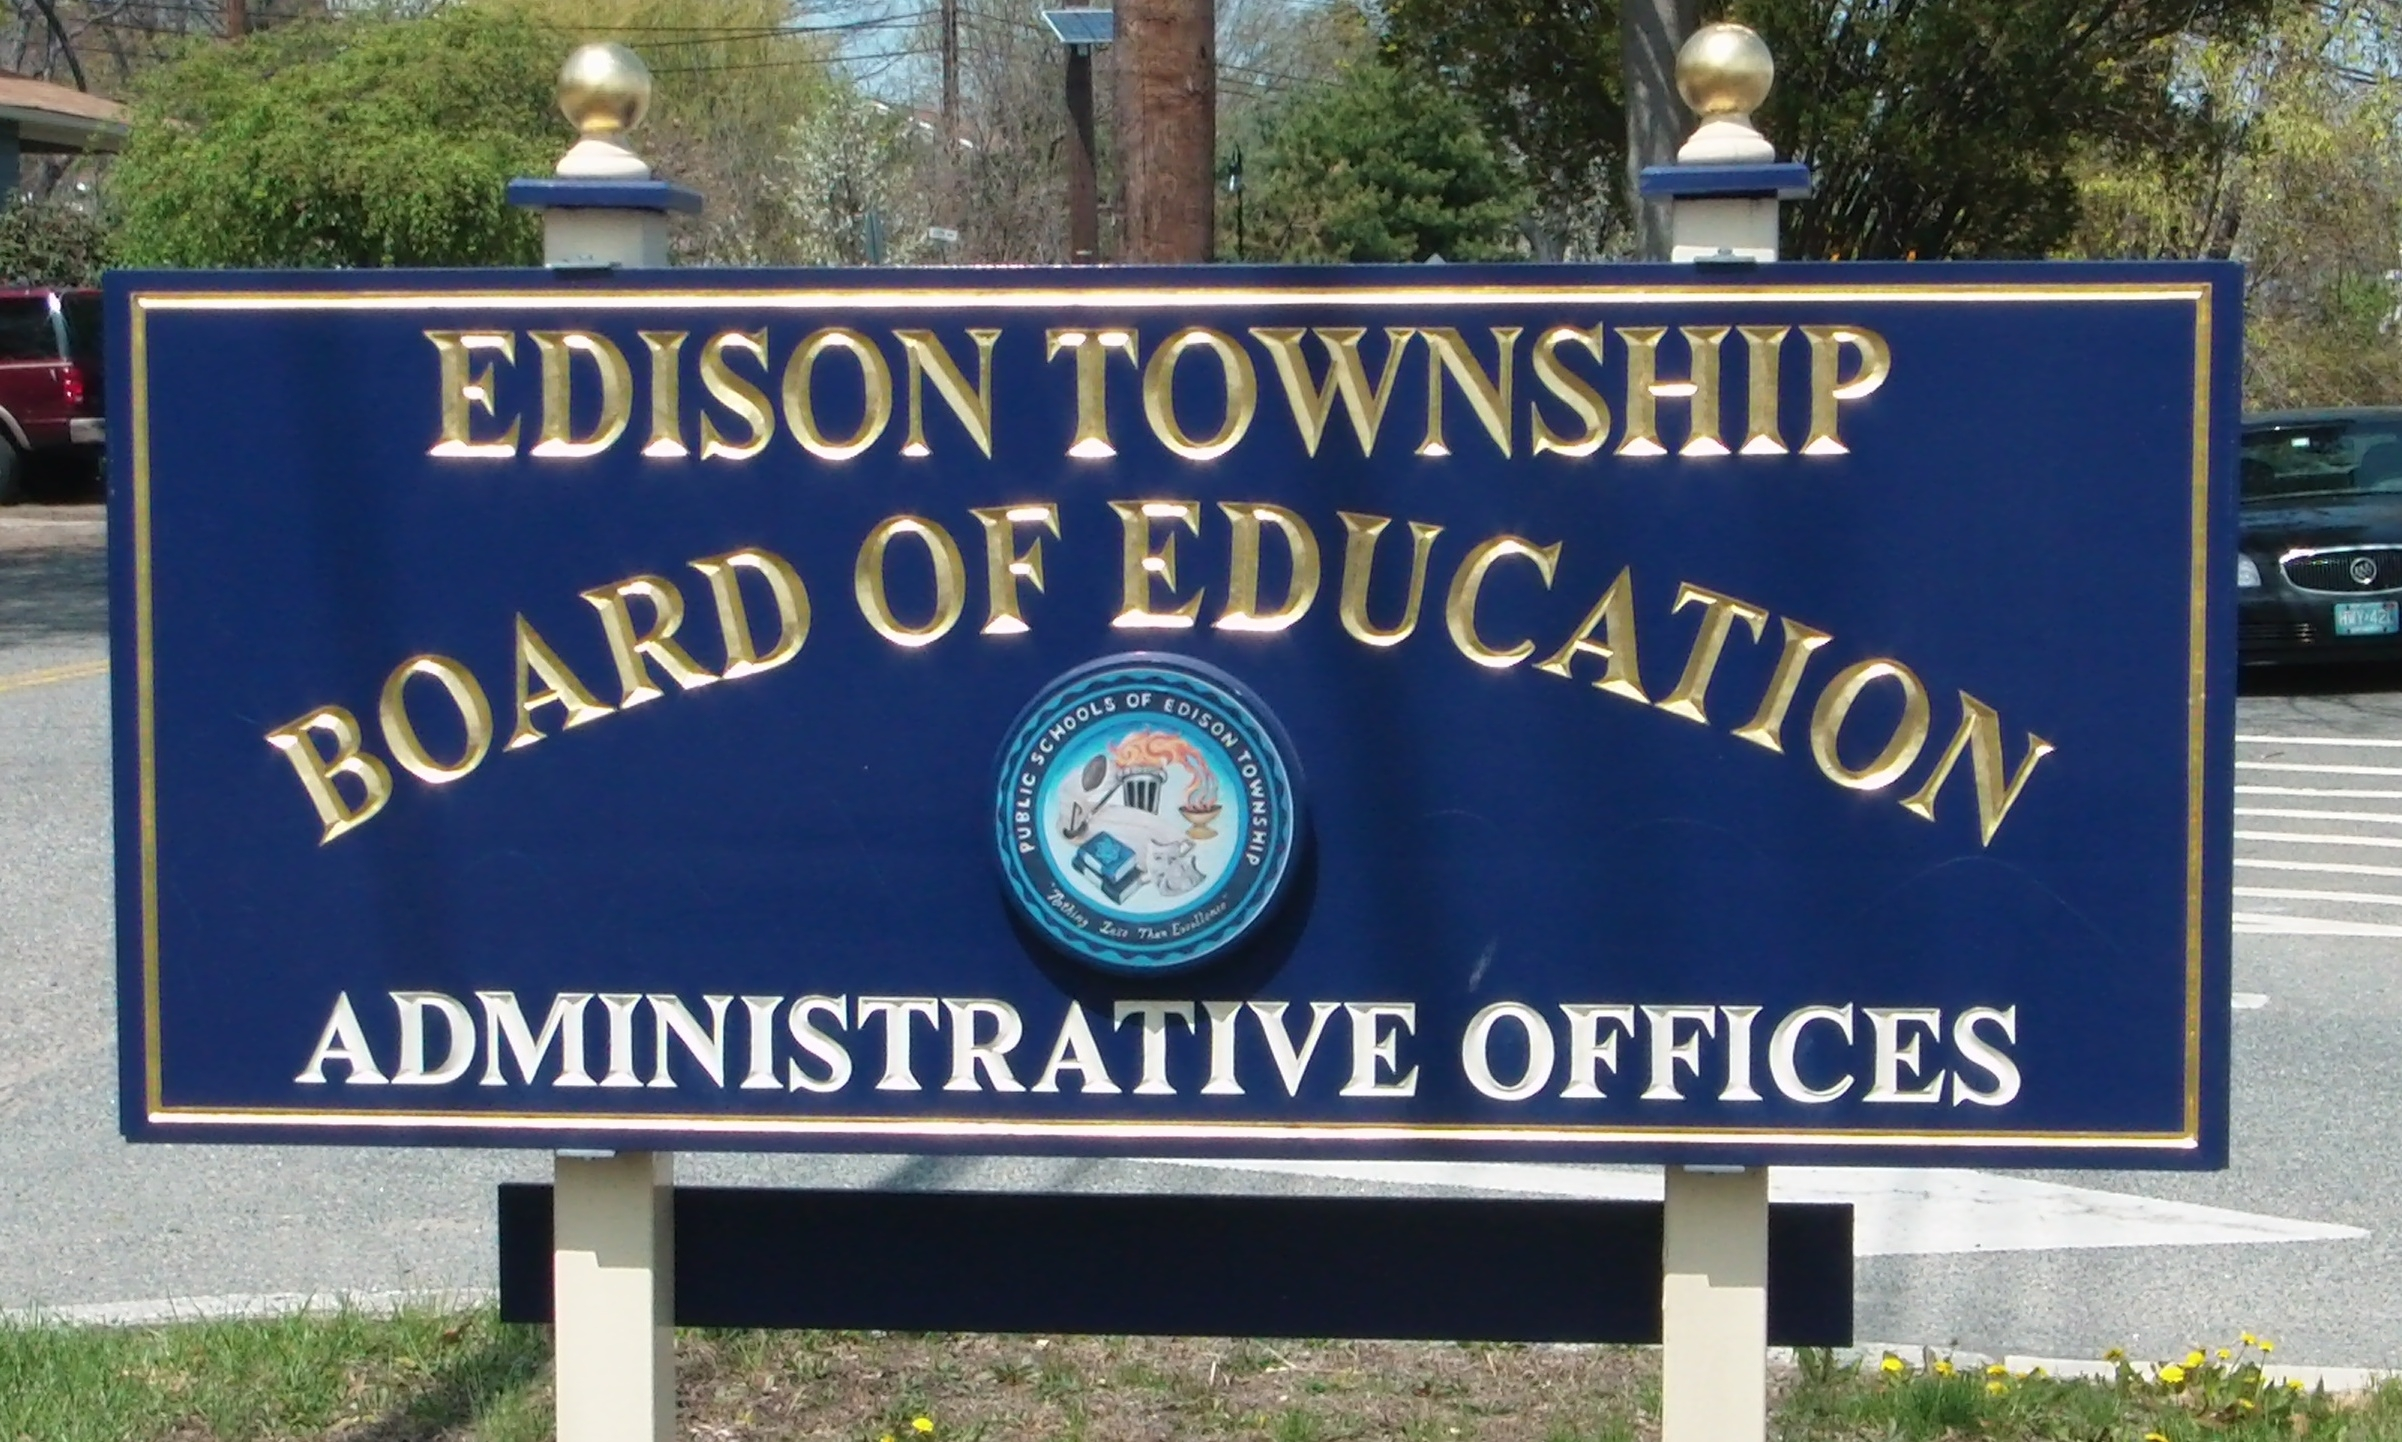 CANCELED - The Regular Meeting of the Board of Education for Monday, May  21, 2018 has been CANCELED